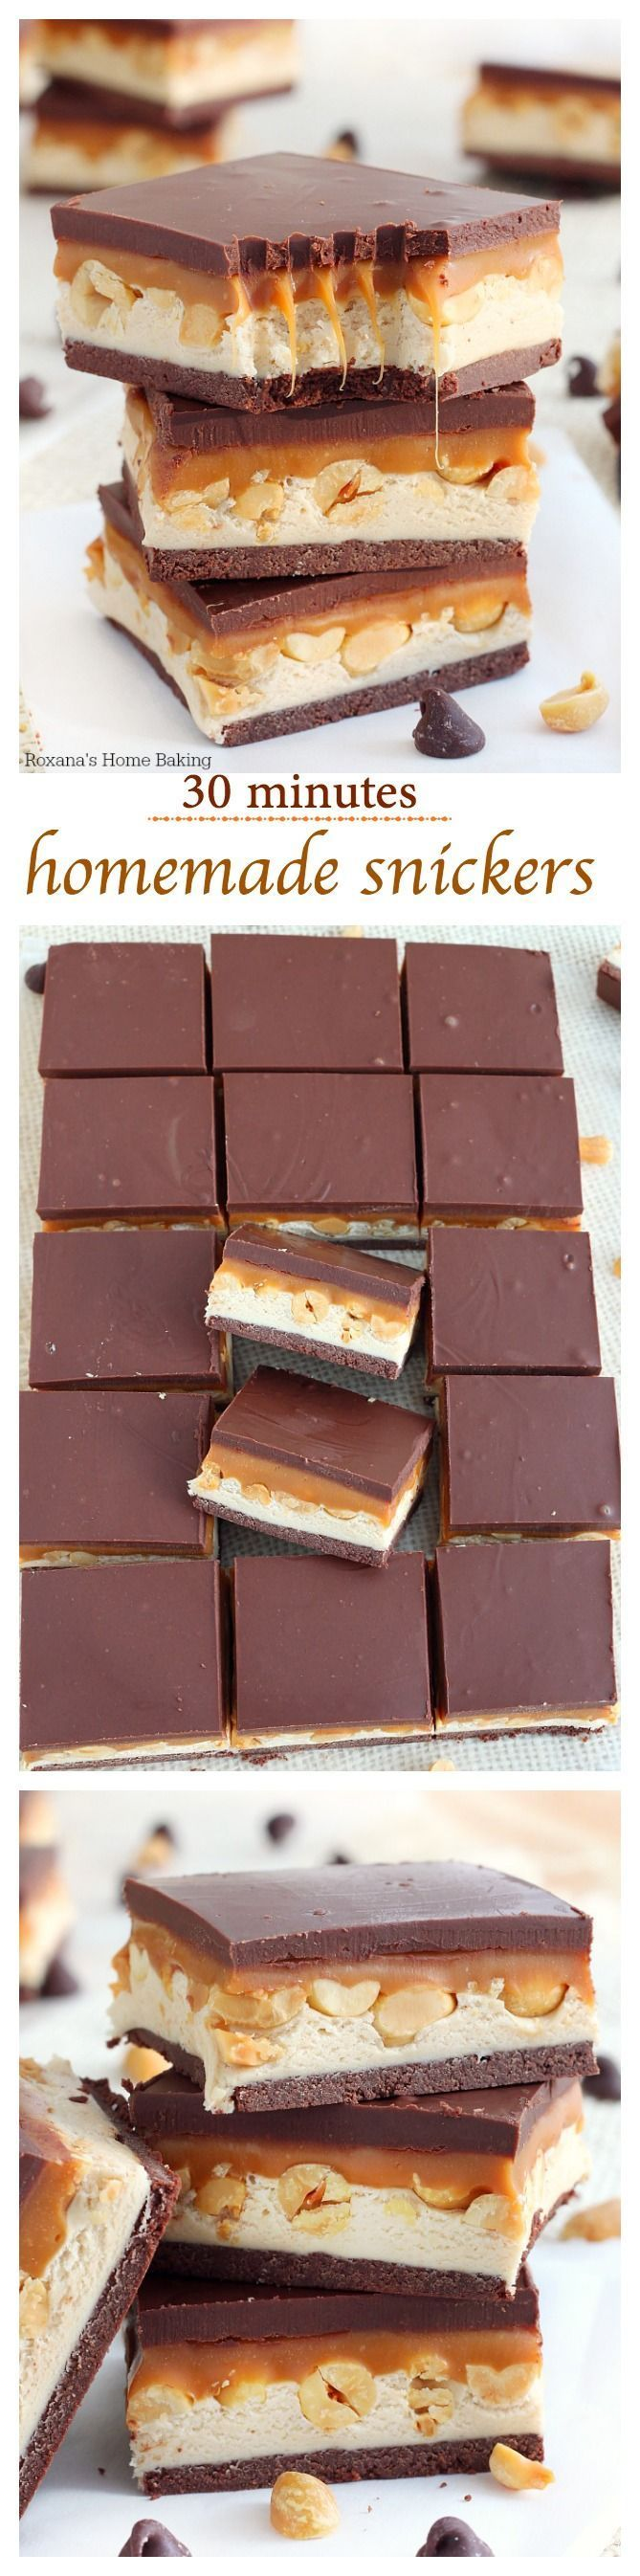 Nougat, peanuts and caramel sandwiched between two chocolate layers, these homemade snickers bars come together in 30 minutes tops! Faster than going to the store to buy some!